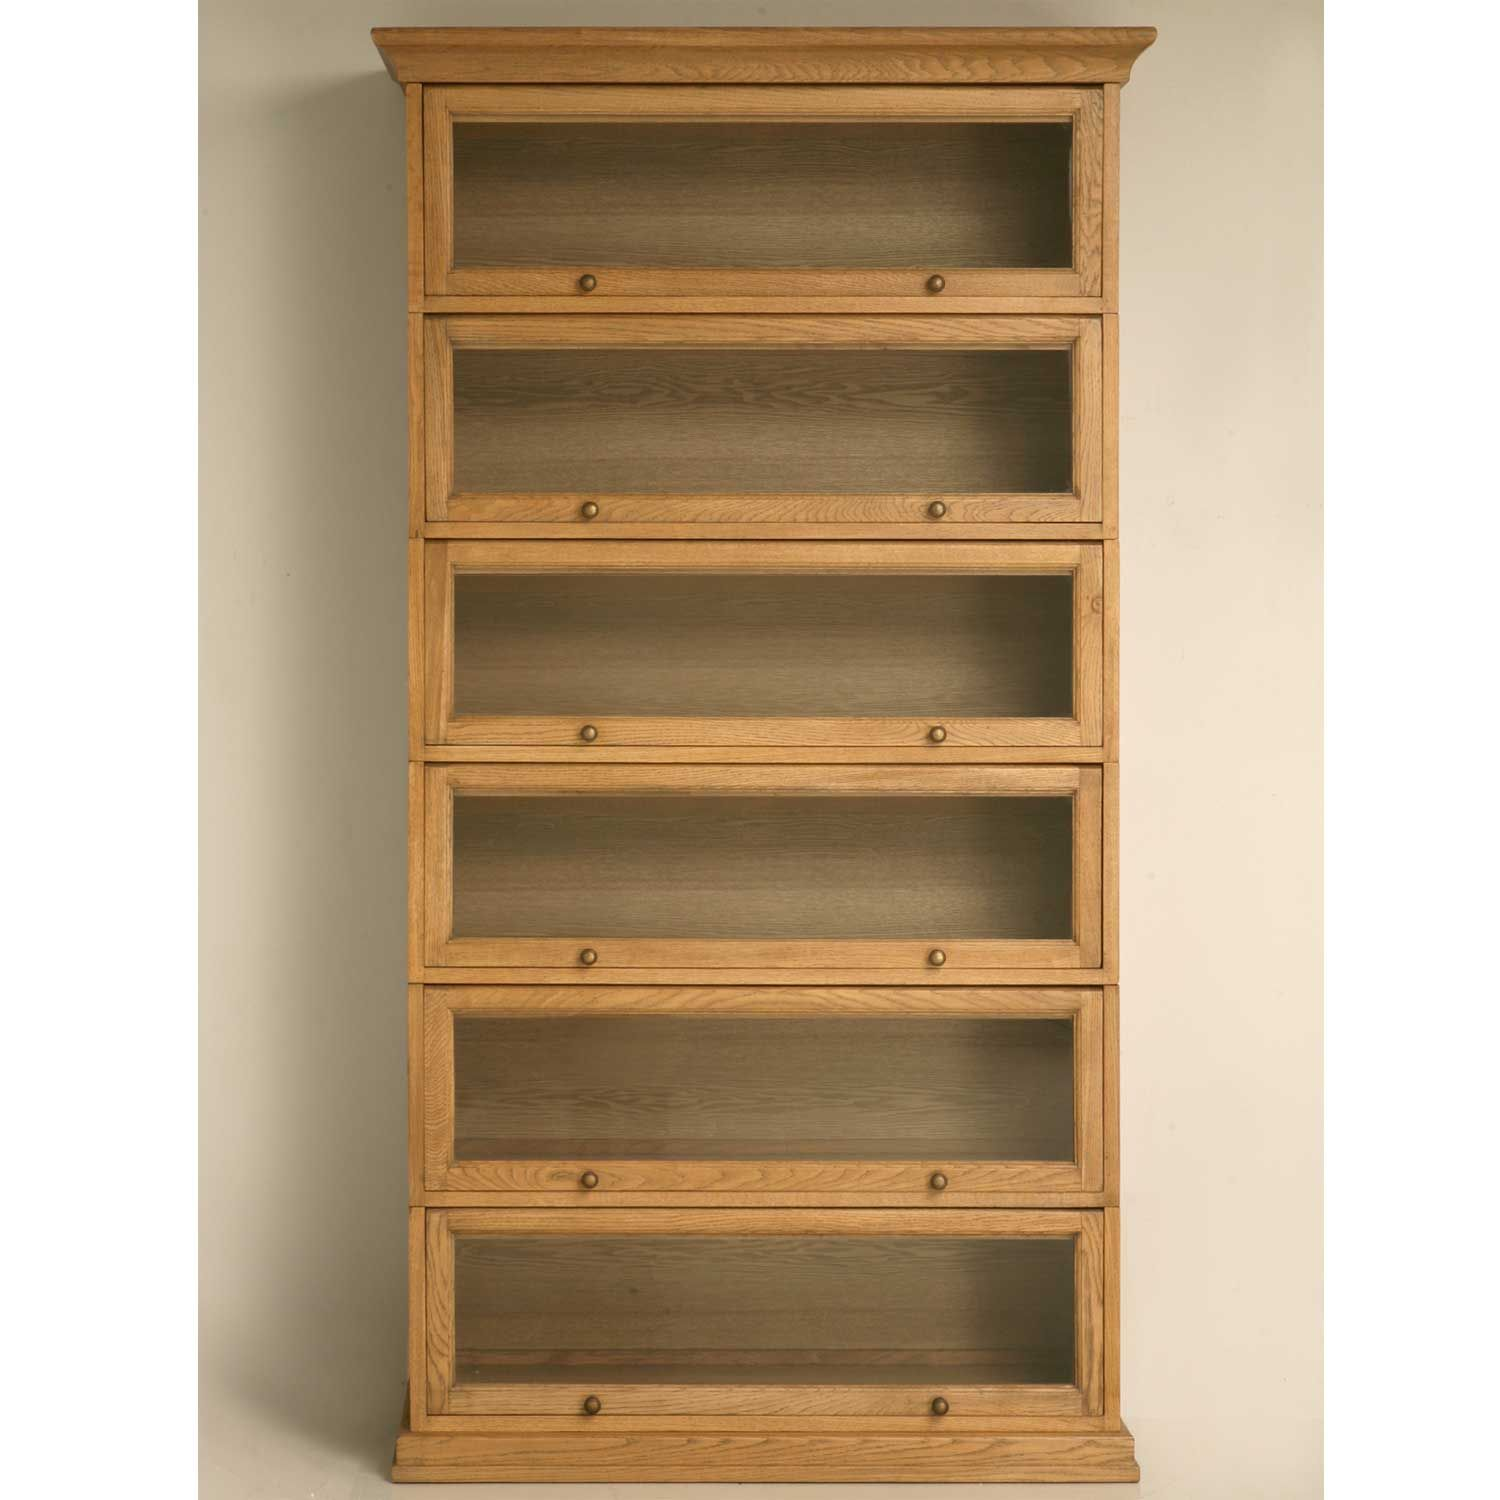 Bookcases | Oak Barrister Bookcase To Organize Your Books | Office Furniture